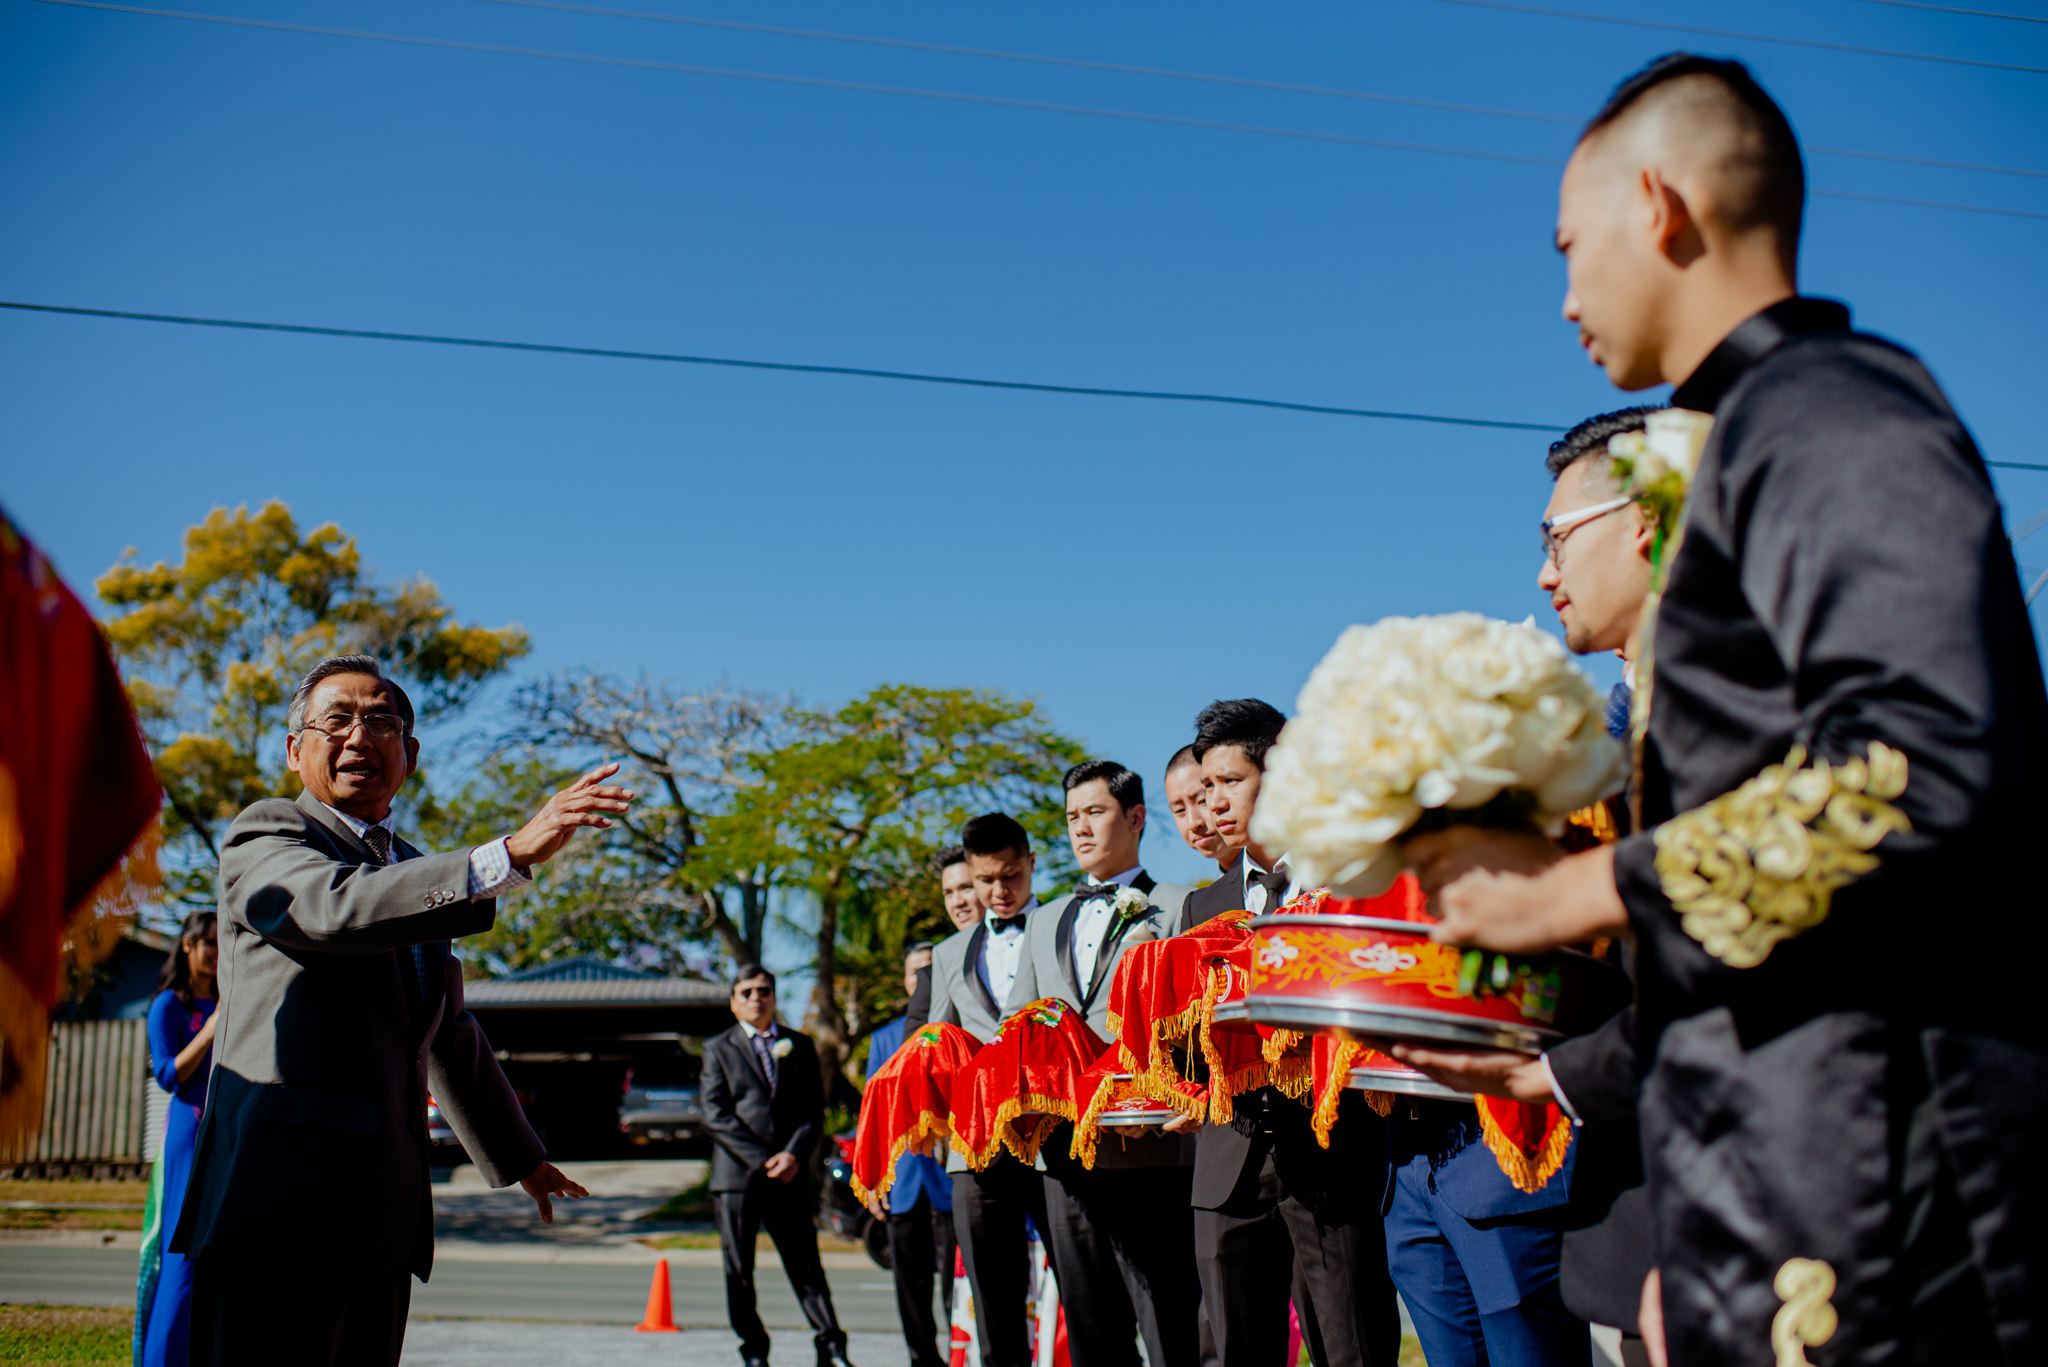 Men holding traditional Vietnamese wedding gifts line up together